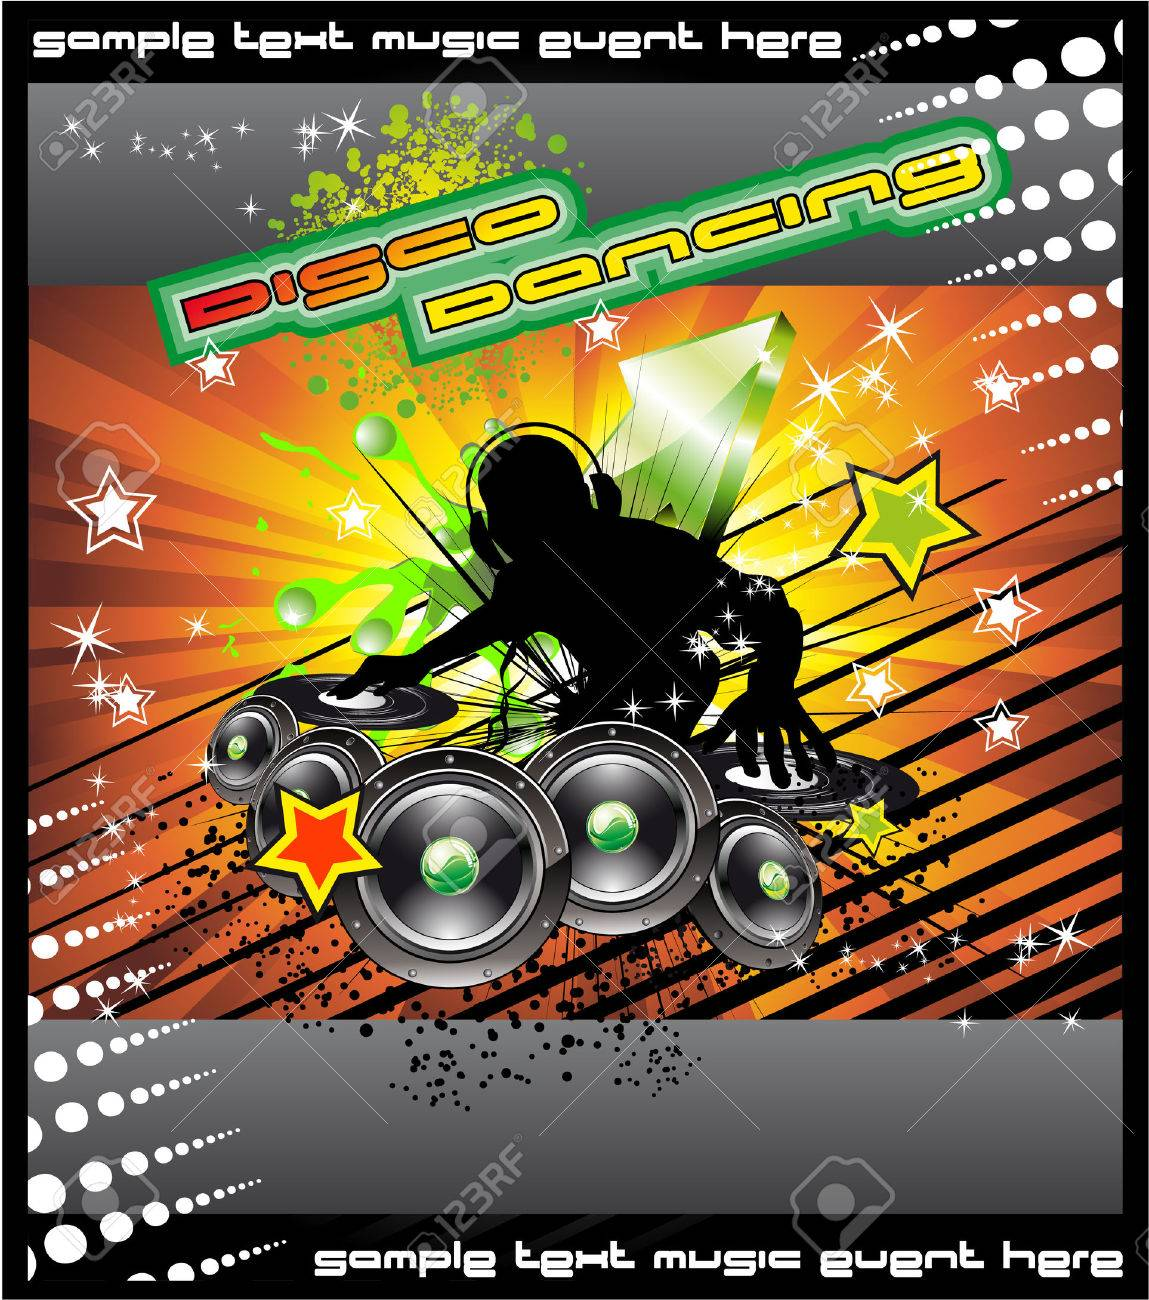 Colorful Disk Jockey Musical Event  Background for Disco Flyer Stock Vector - 5855289